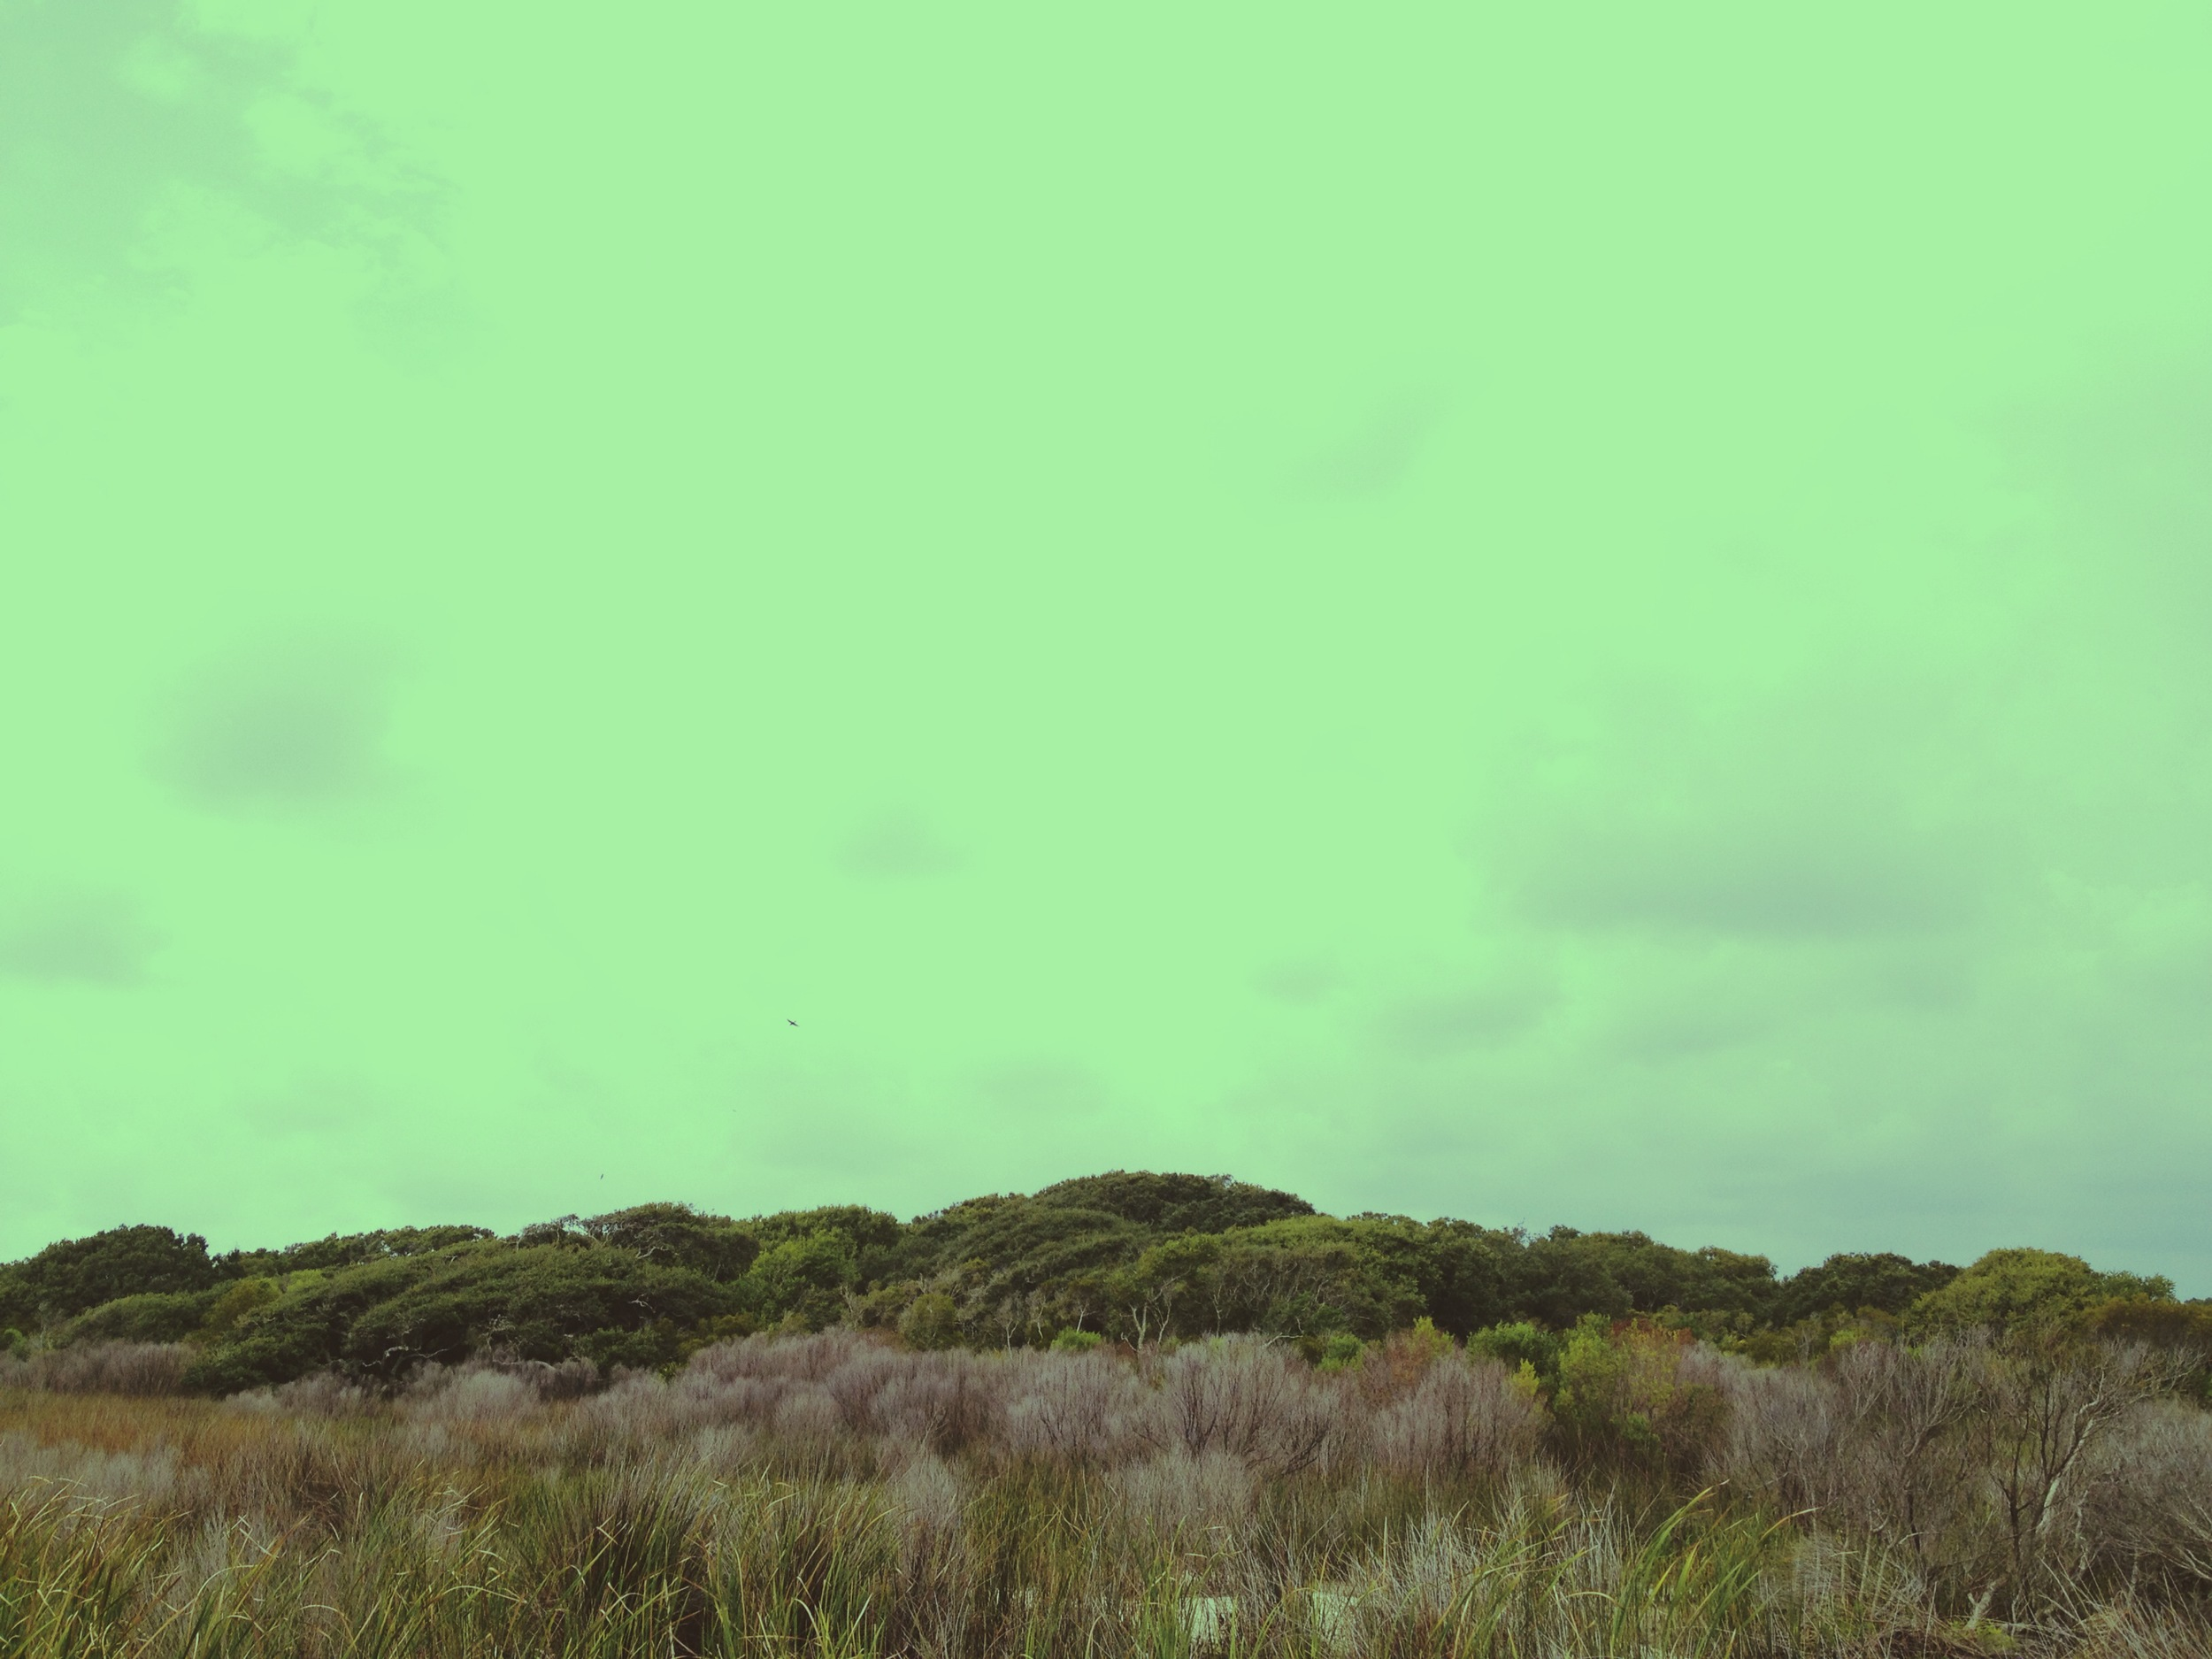 Forest / Blackbeard Island National Wildlife Refuge 2014 © Manda Faye Dunigan